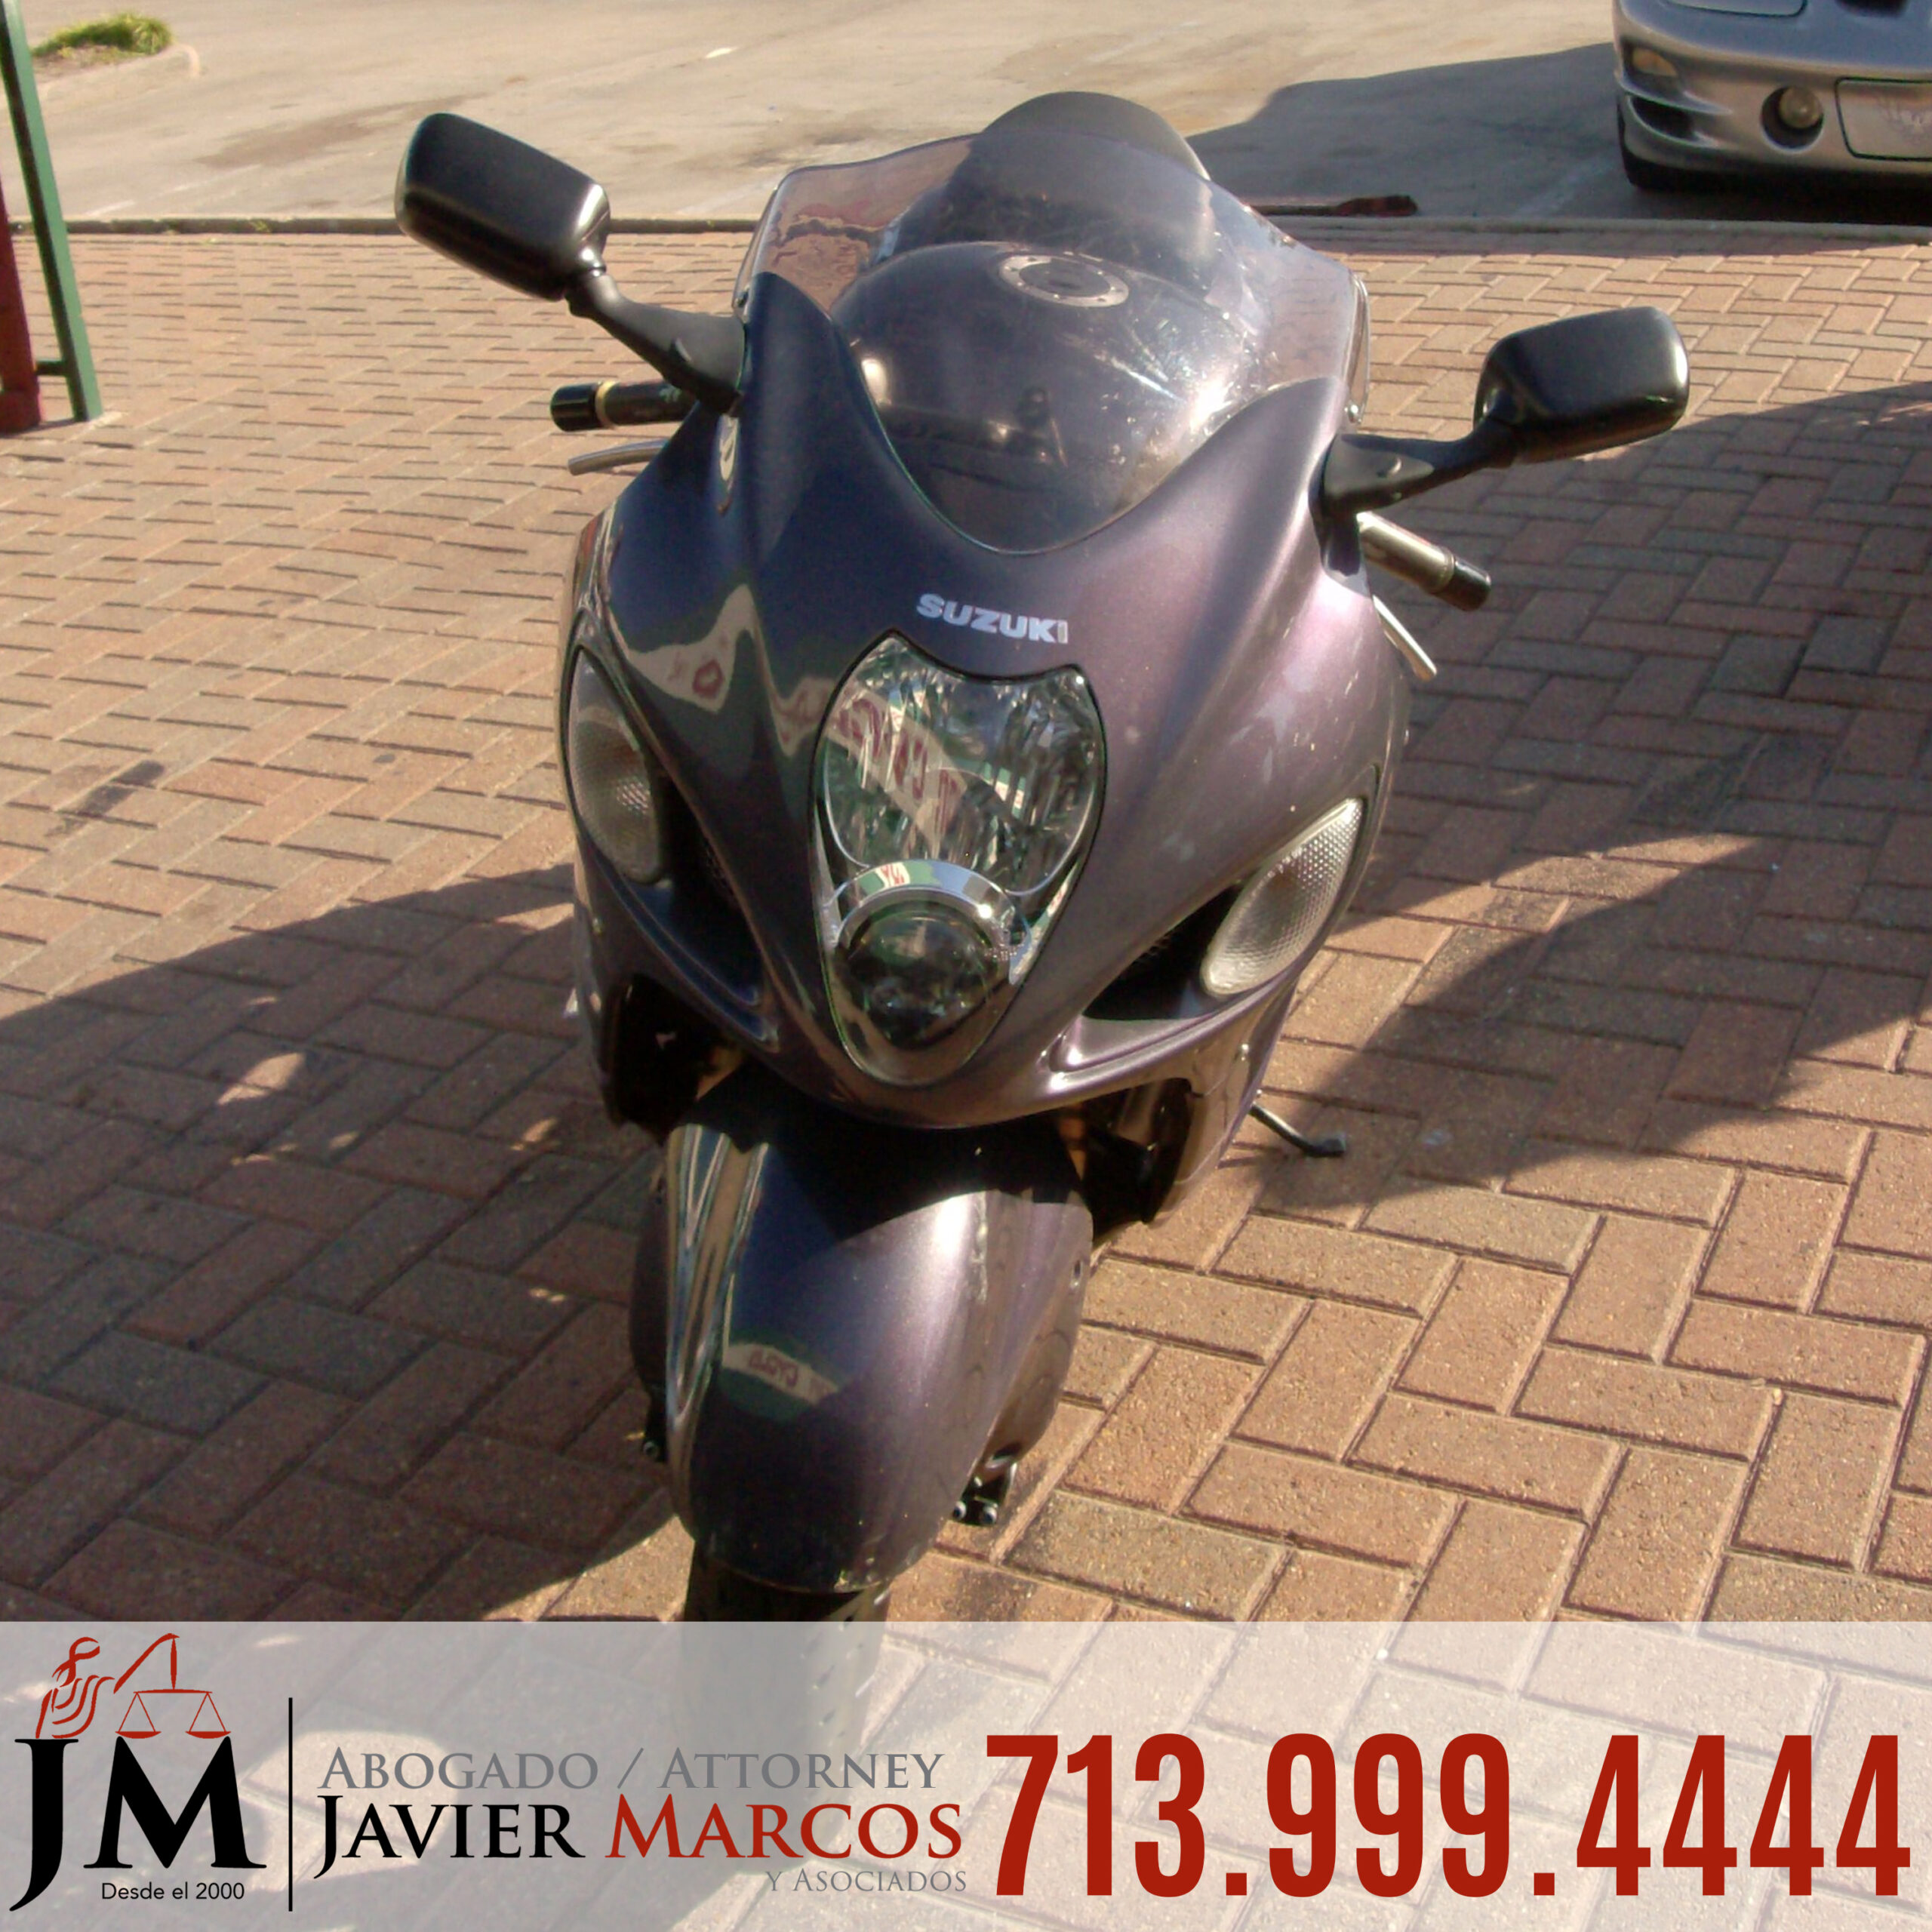 Motorcycle accident Lawyer | Attorney Javier Marcos | 713.999.4444